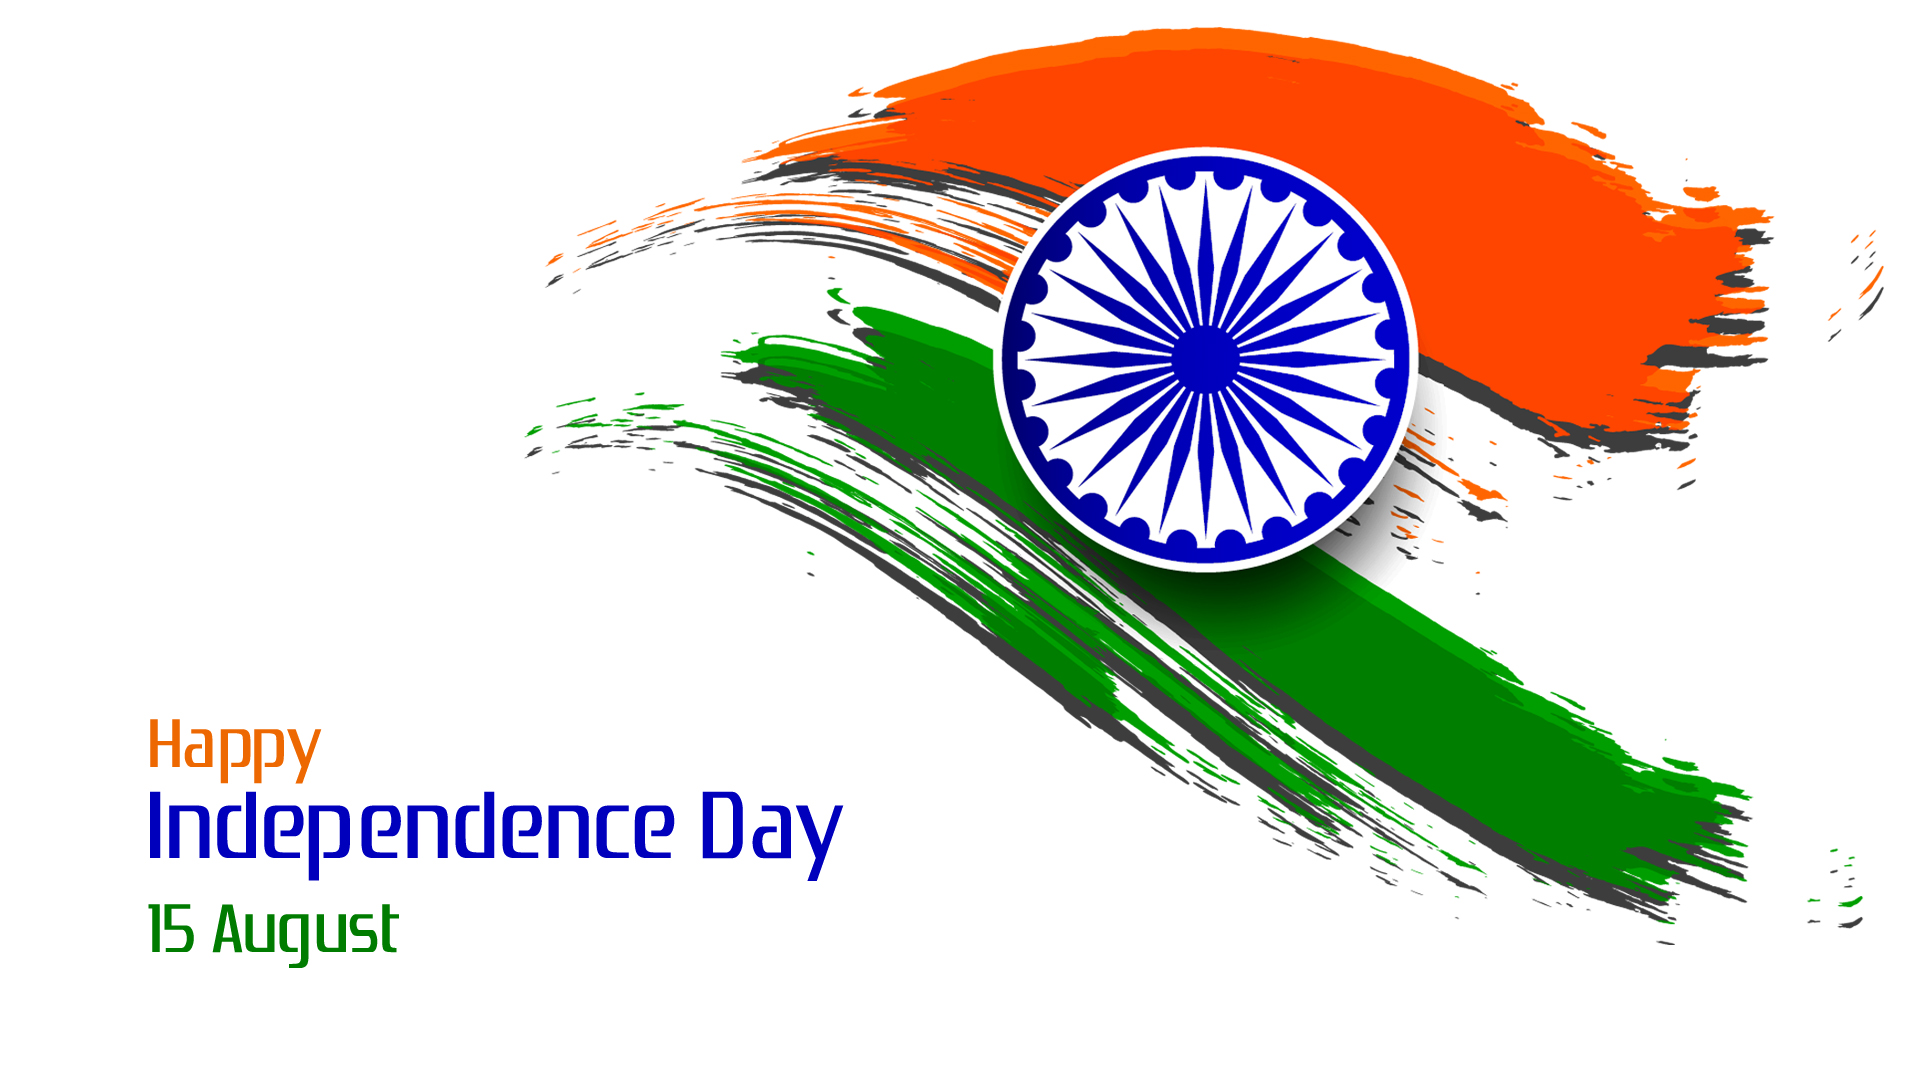 National Flag Of India: National Flag Of India Art For Independence Day